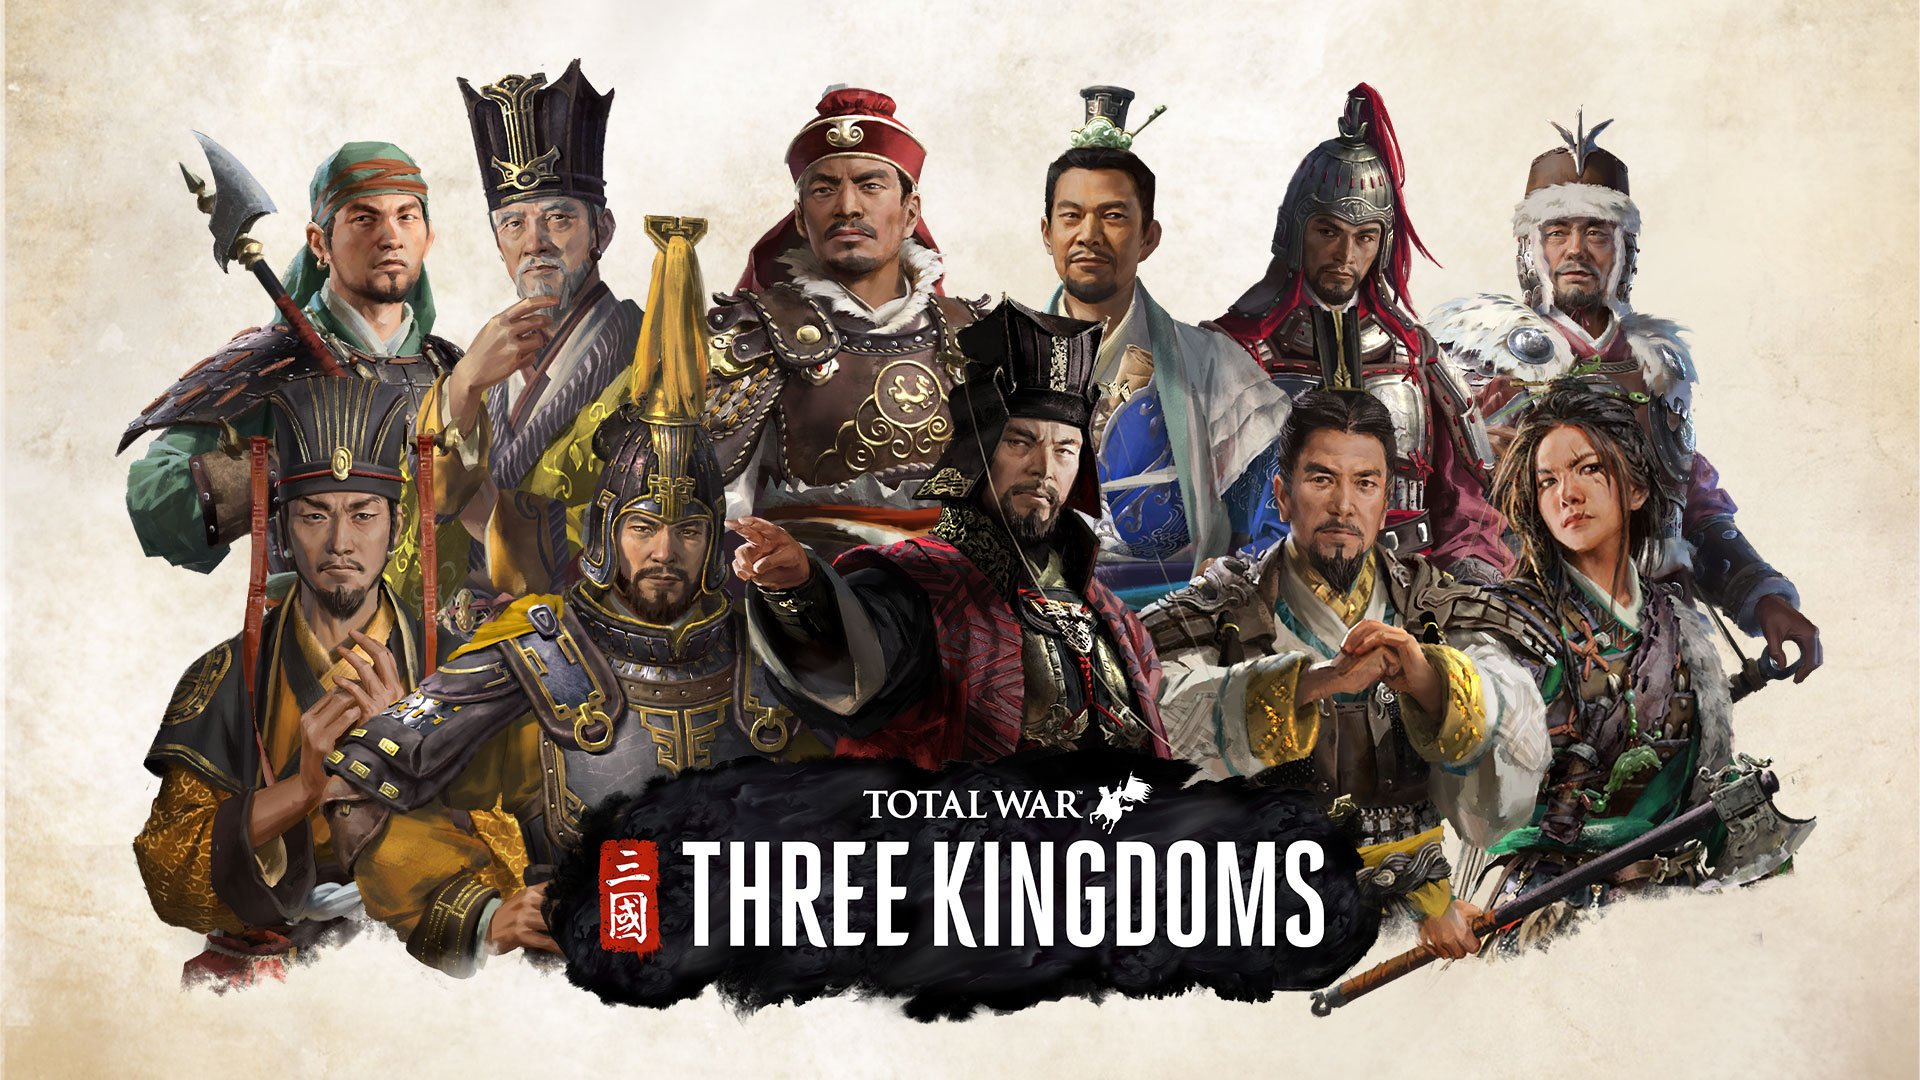 total war three kingdoms video game wallpaper 67499